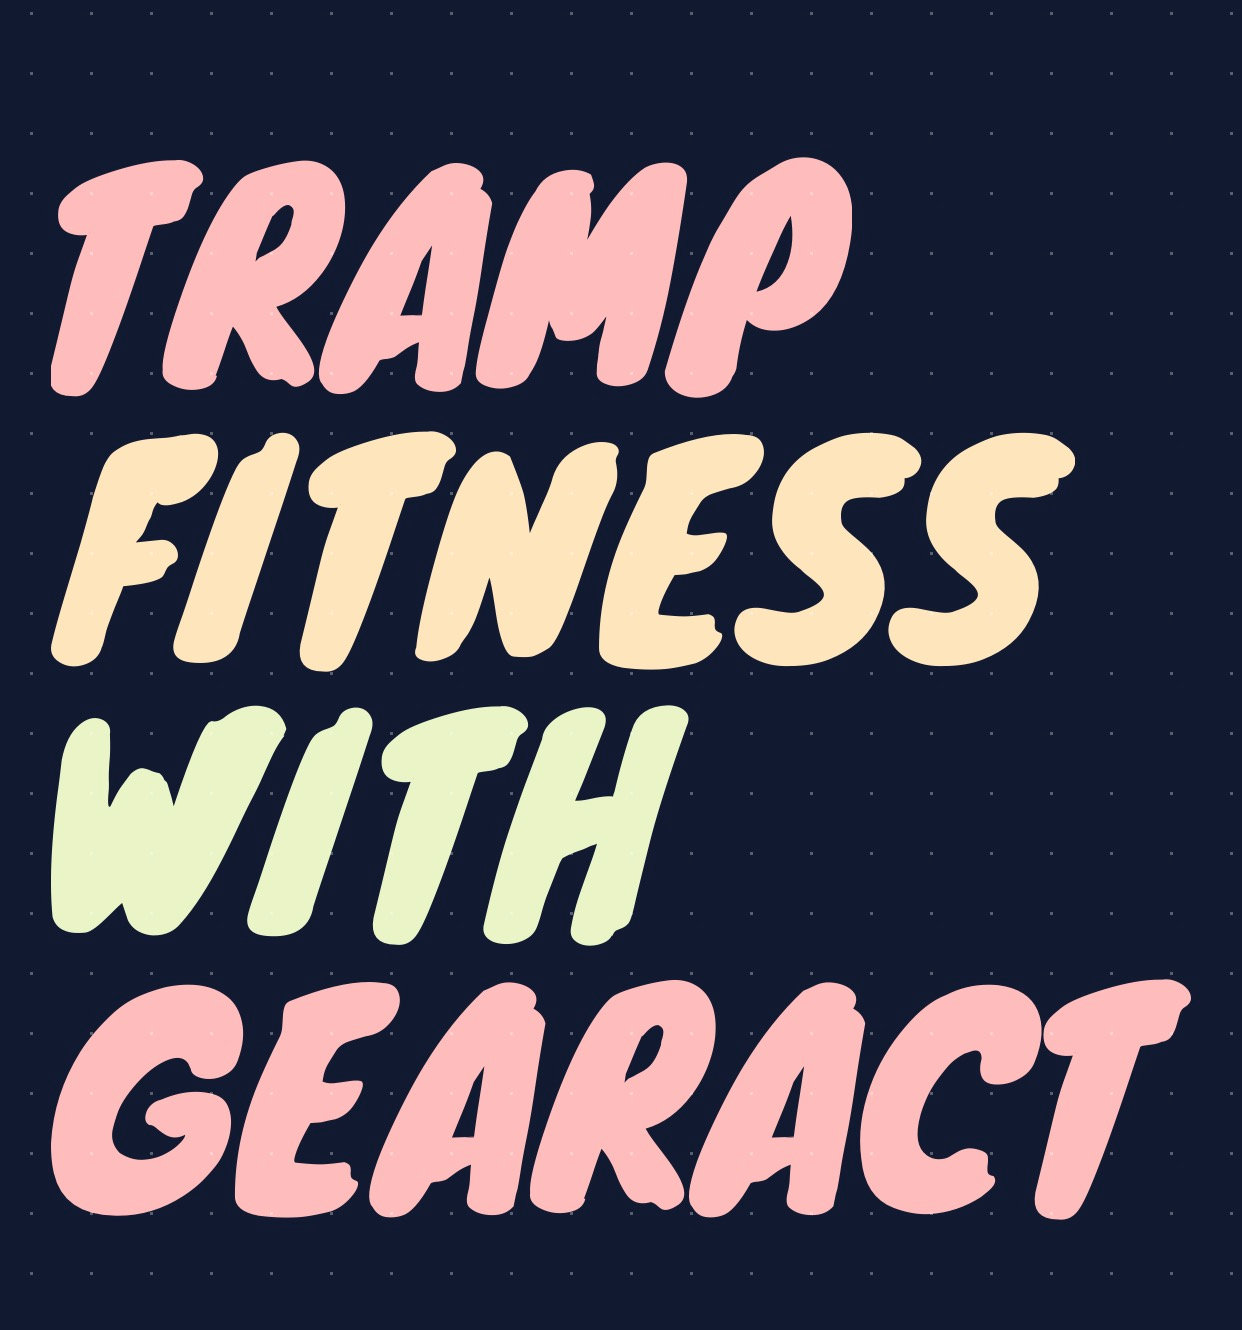 Tramp Fitness with Gearact